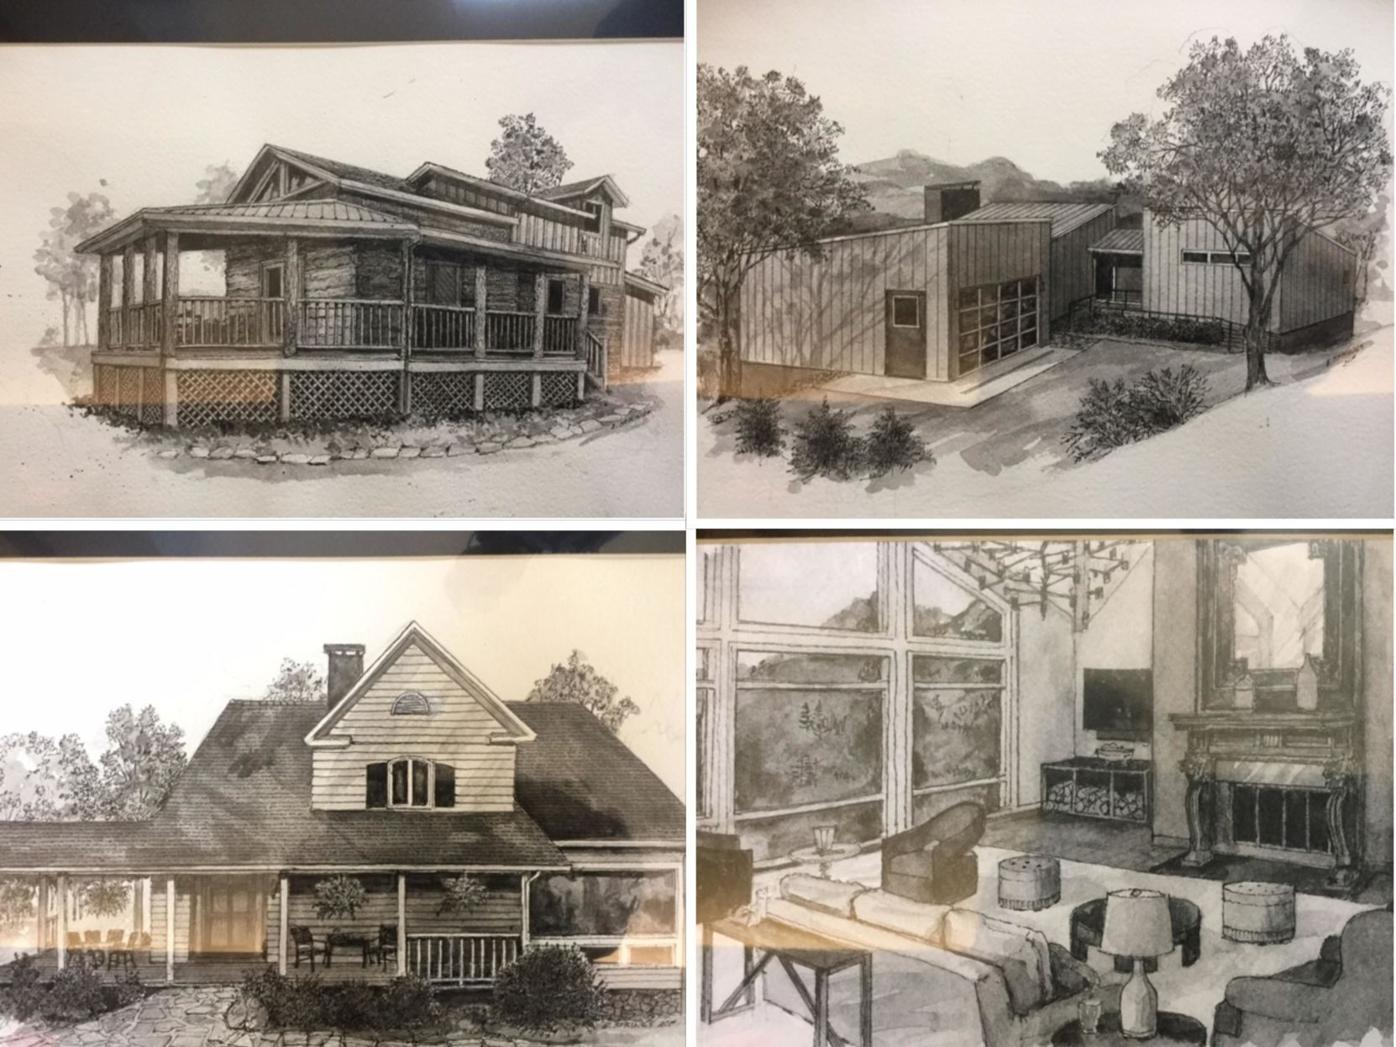 2019 Tour of Homes sketches